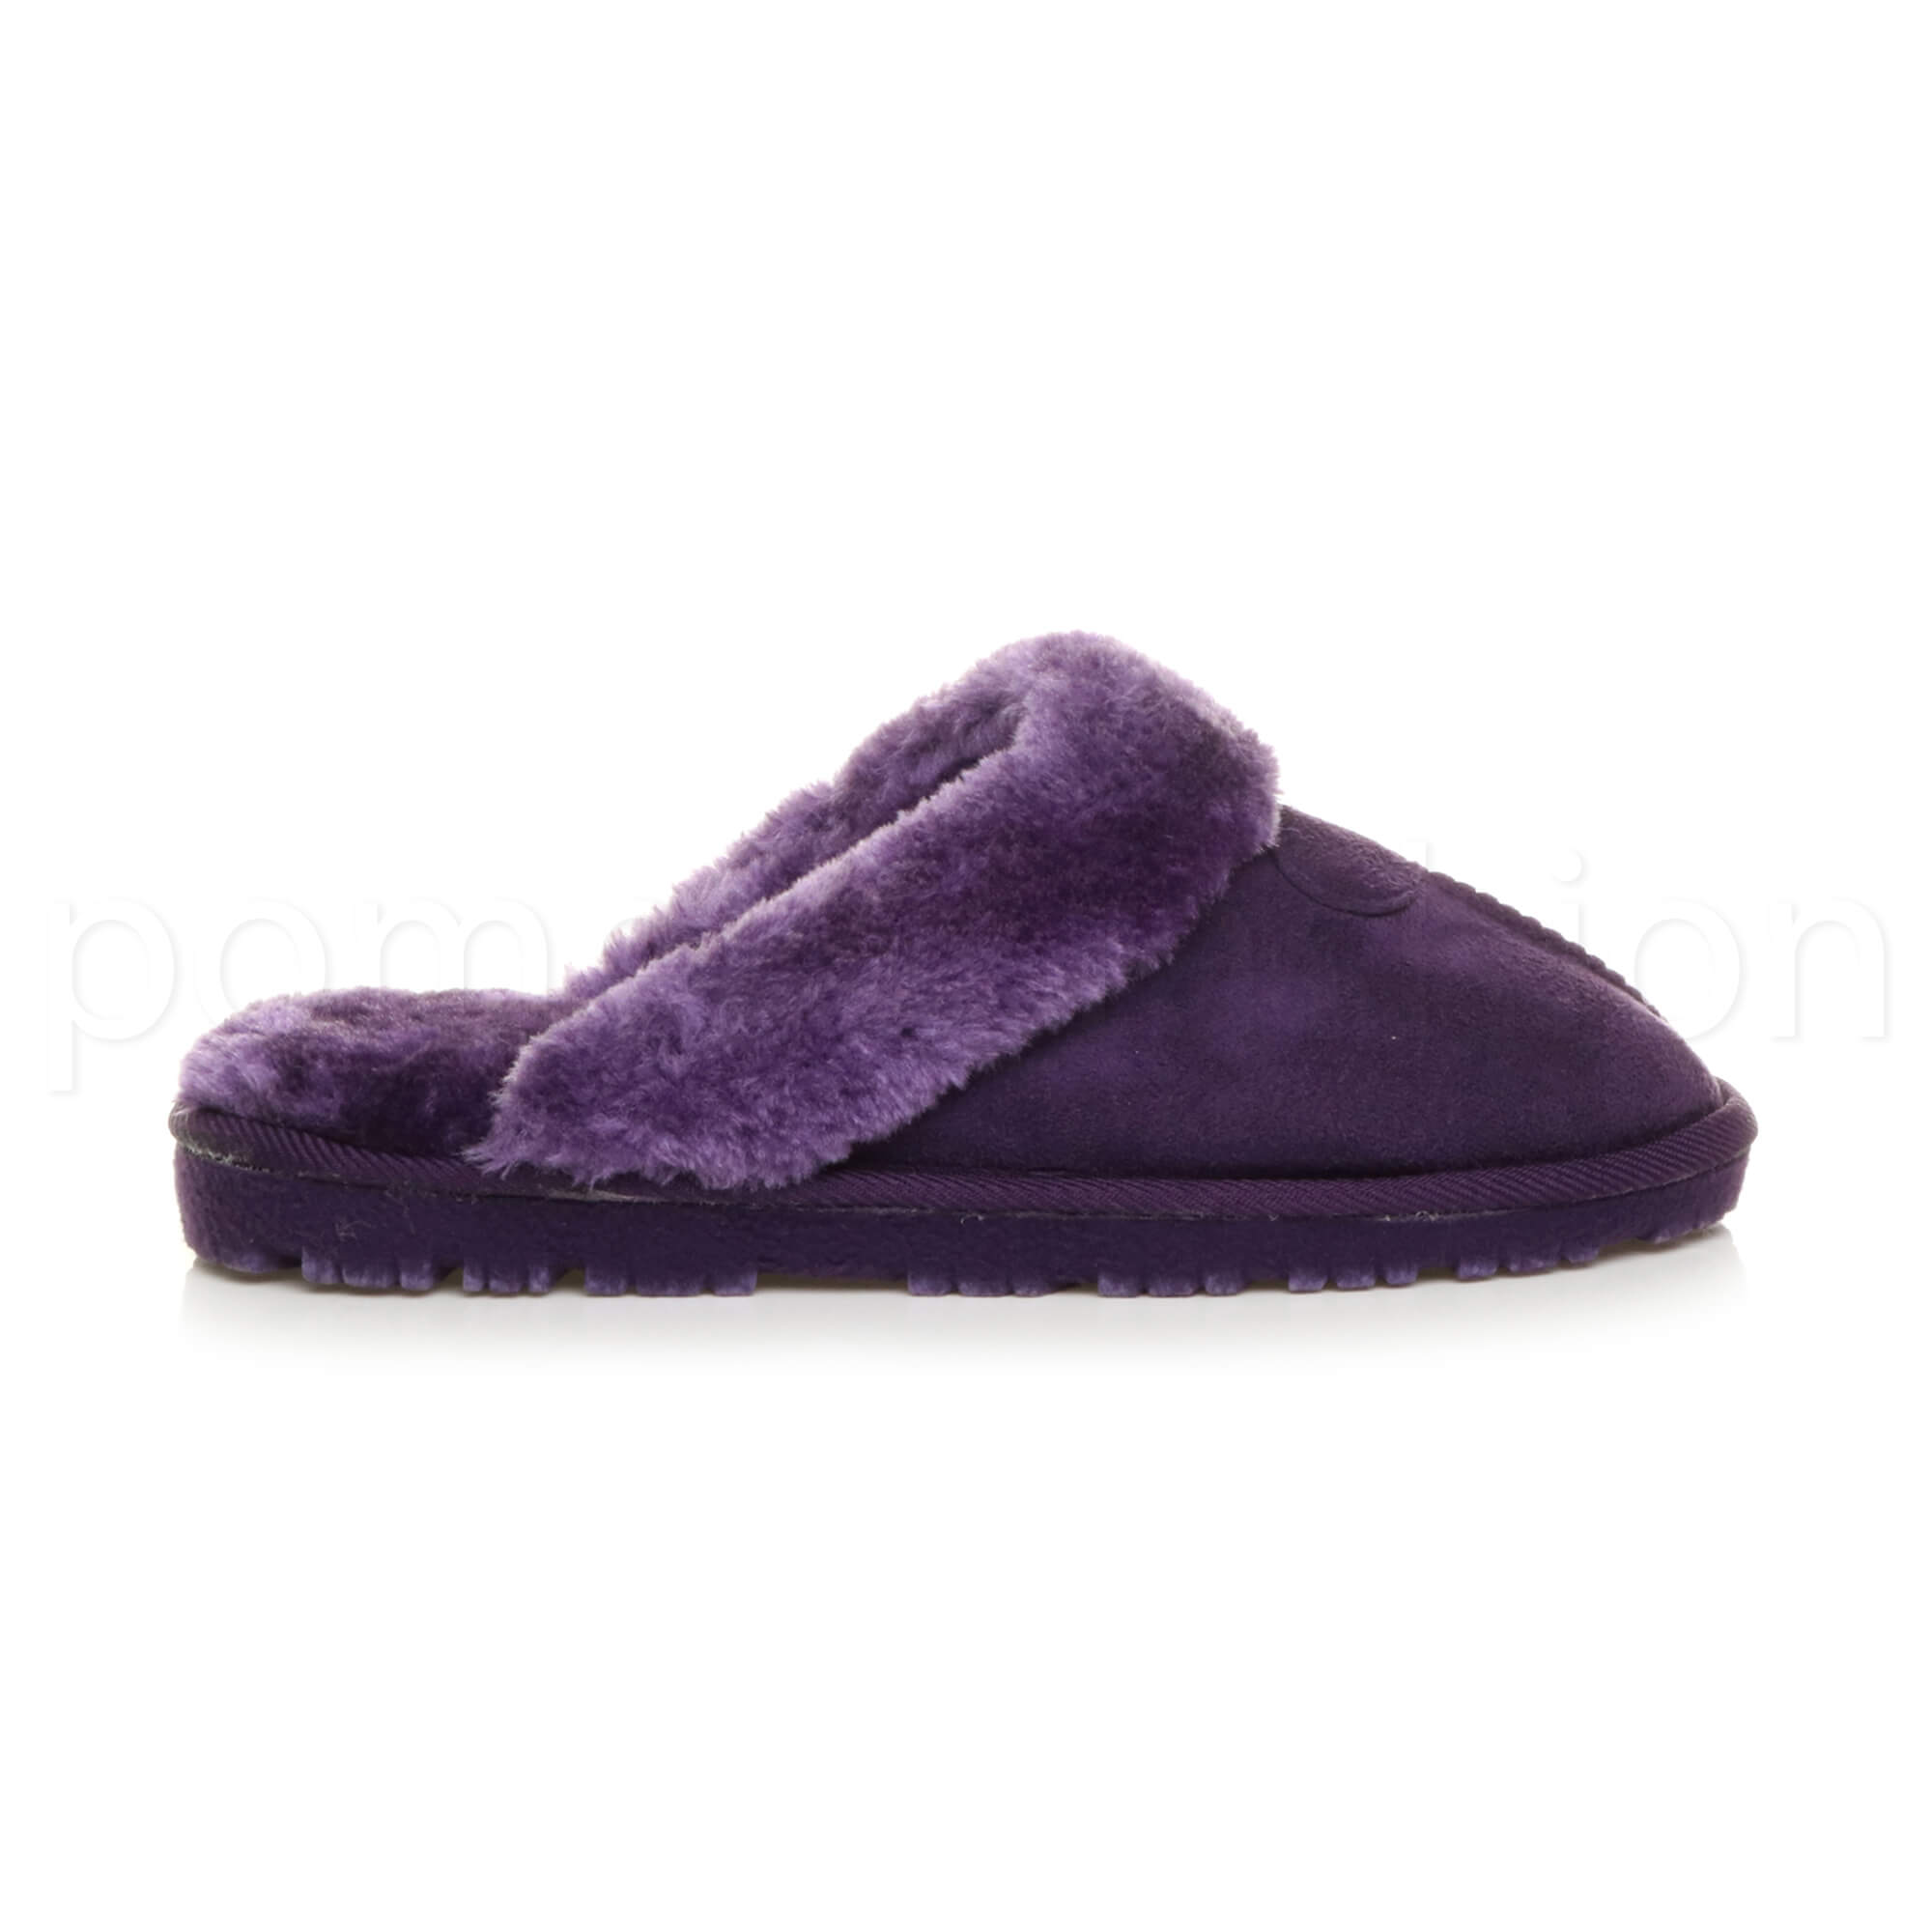 WOMENS-LADIES-FLAT-FUR-LINED-COMFORTABLE-WINTER-MULES-SLIPPERS-HOUSE-SHOES-SIZE thumbnail 87